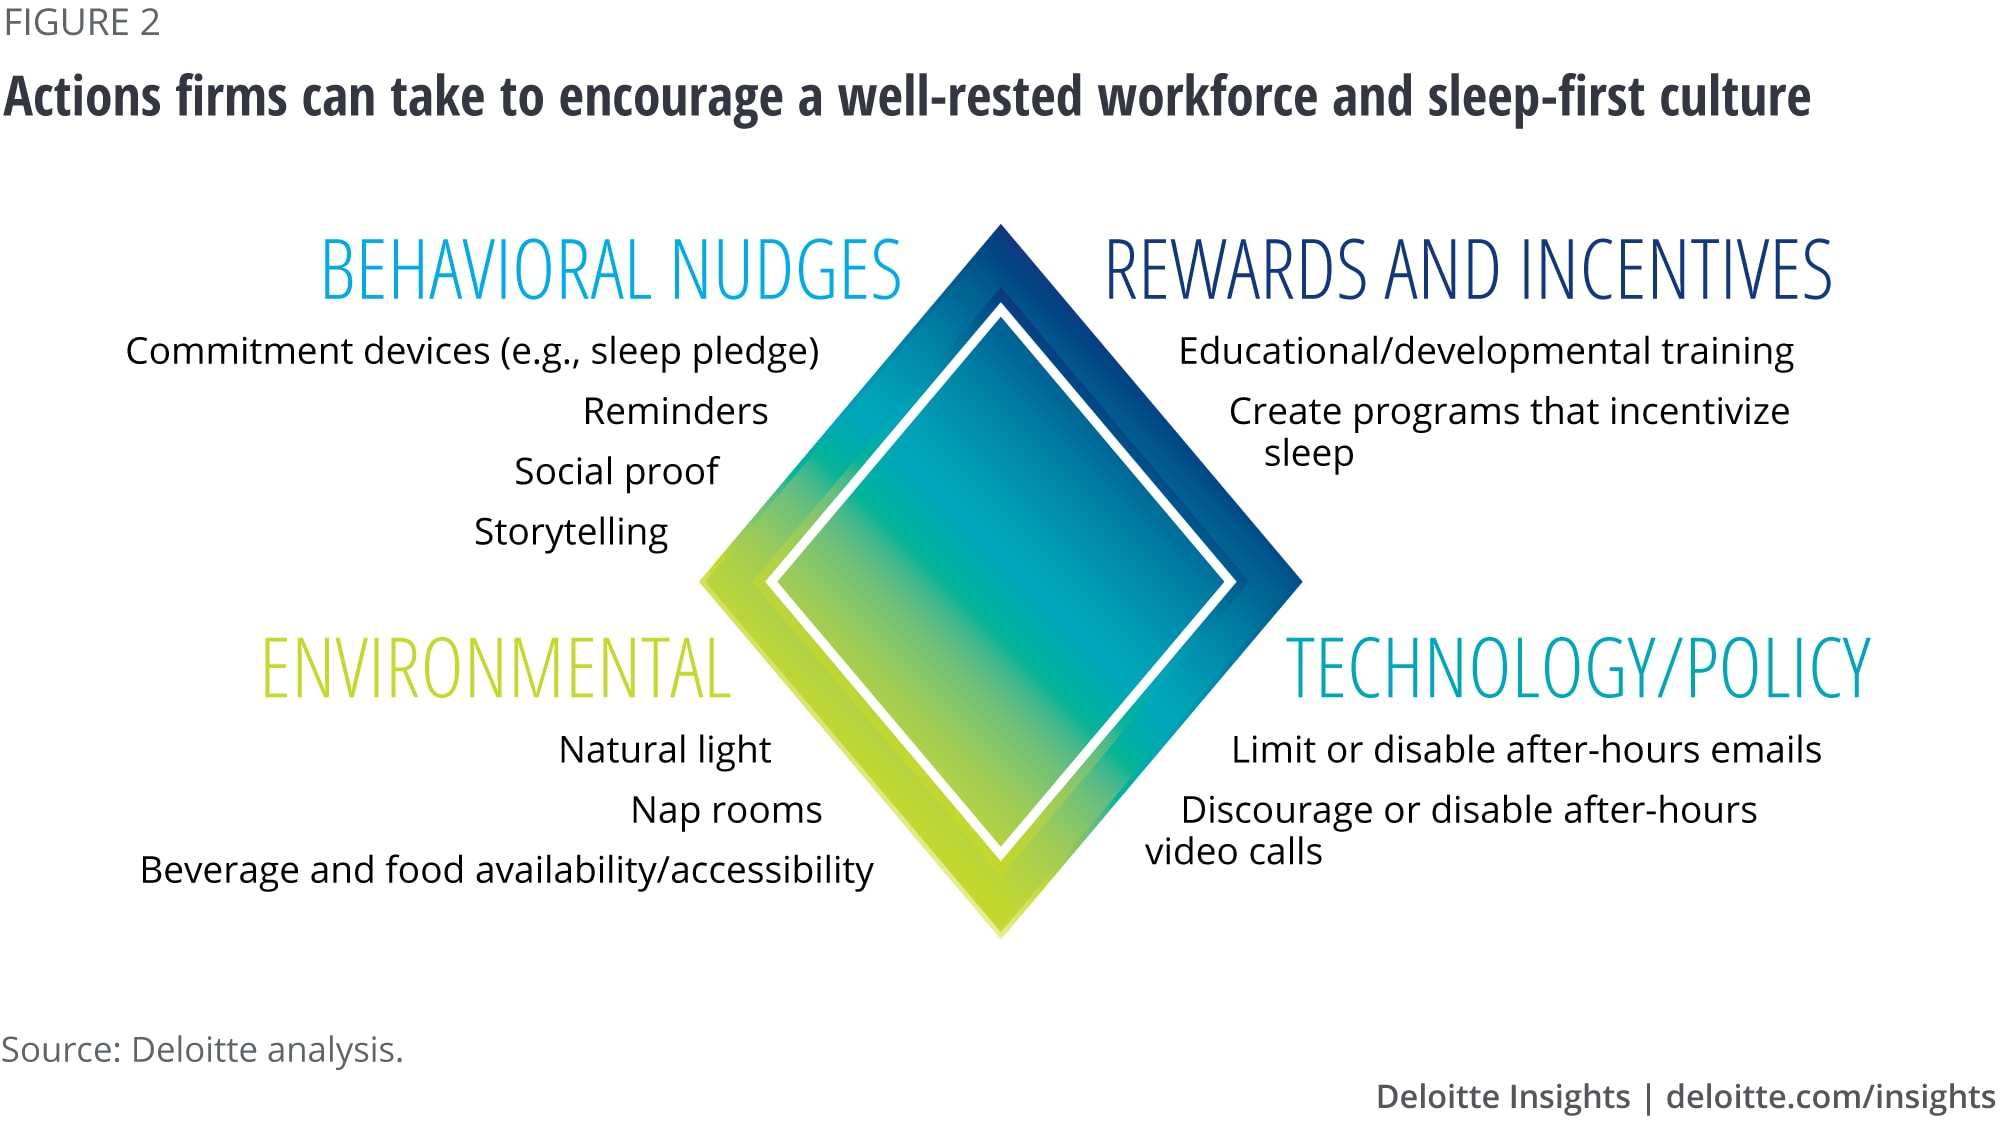 Actions firms can take to encourage a well-rested workforce and sleep-first culture